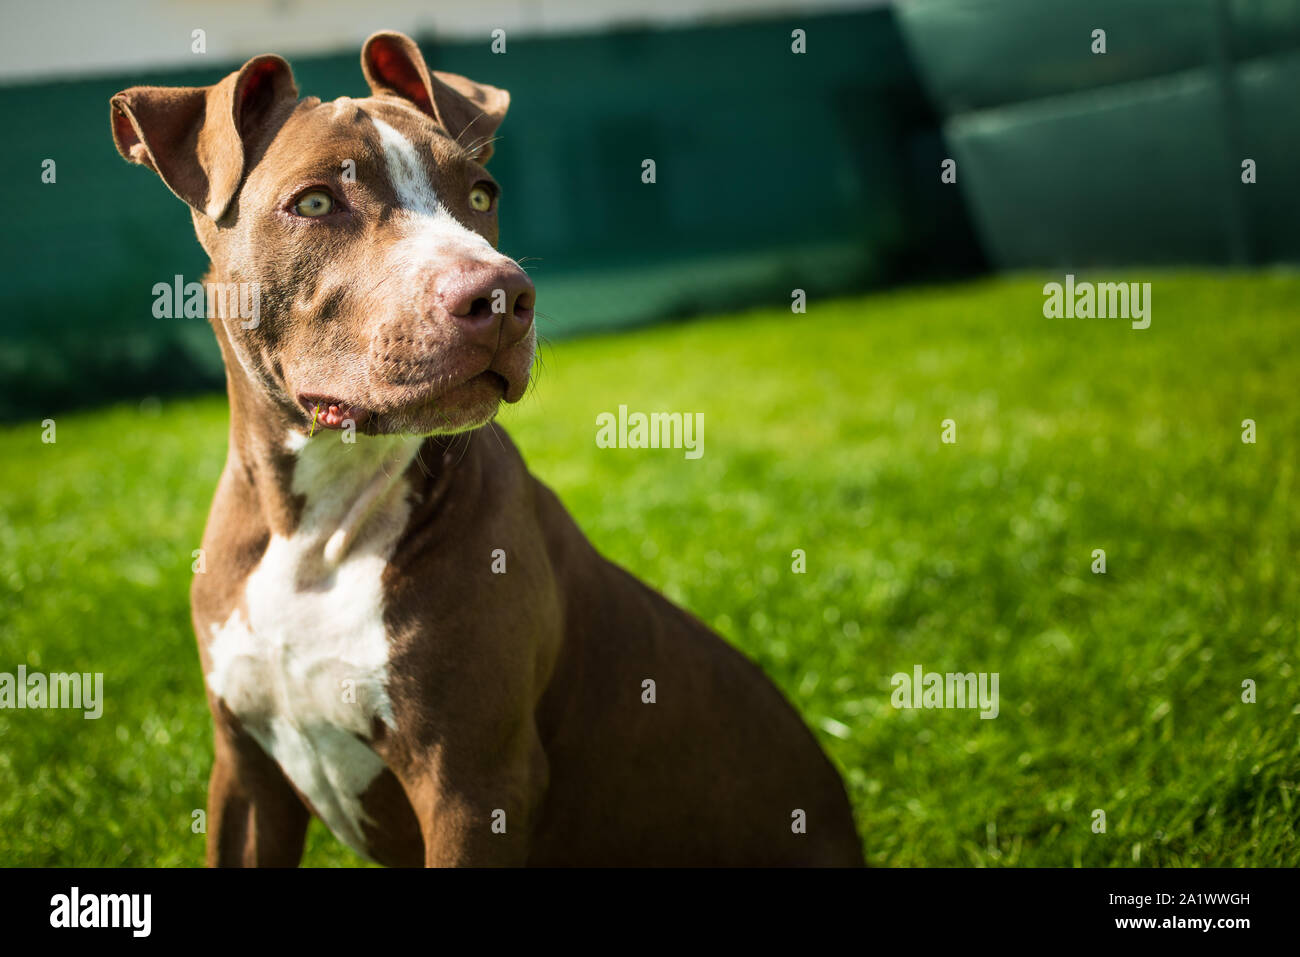 Young American Staffordshire terrier Amstaff having fun running in a garden Stock Photo